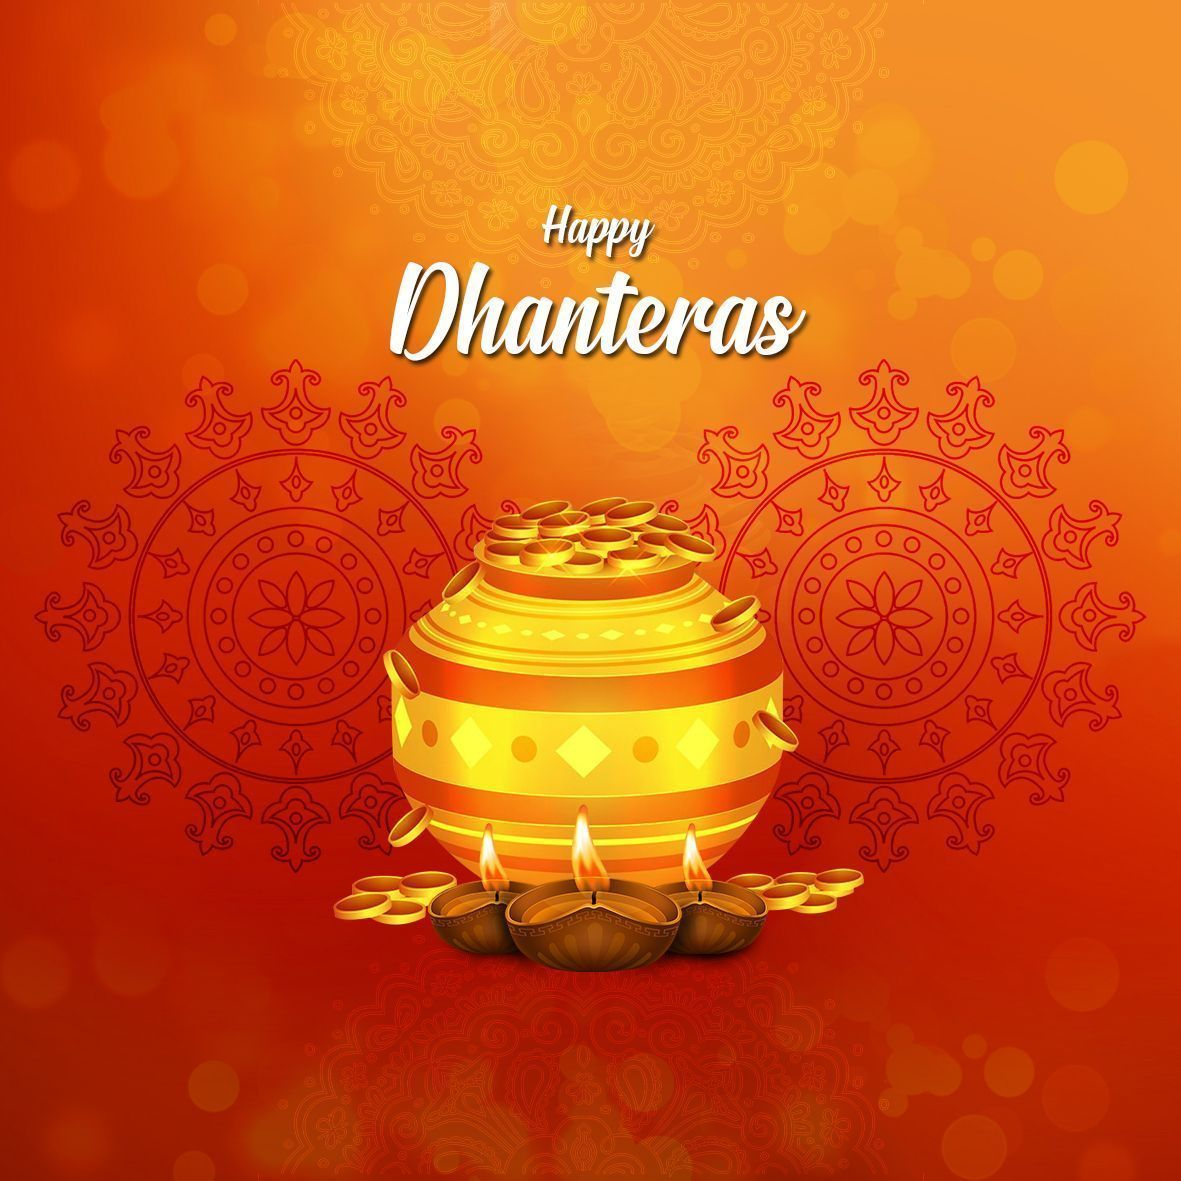 Happy Dhanteras #dhanteraswishes Creative #Dhanteras #Festival poster. Check out latest Happy Dhanteras wishes pics. Let's #celebrate in true sense this festival of light Wishing you #Happy_Dhanteras2019 #happydhanteras Happy Dhanteras #dhanteraswishes Creative #Dhanteras #Festival poster. Check out latest Happy Dhanteras wishes pics. Let's #celebrate in true sense this festival of light Wishing you #Happy_Dhanteras2019 #dhanteraswishes Happy Dhanteras #dhanteraswishes Creative #Dhanteras #Festi #happydhanteras